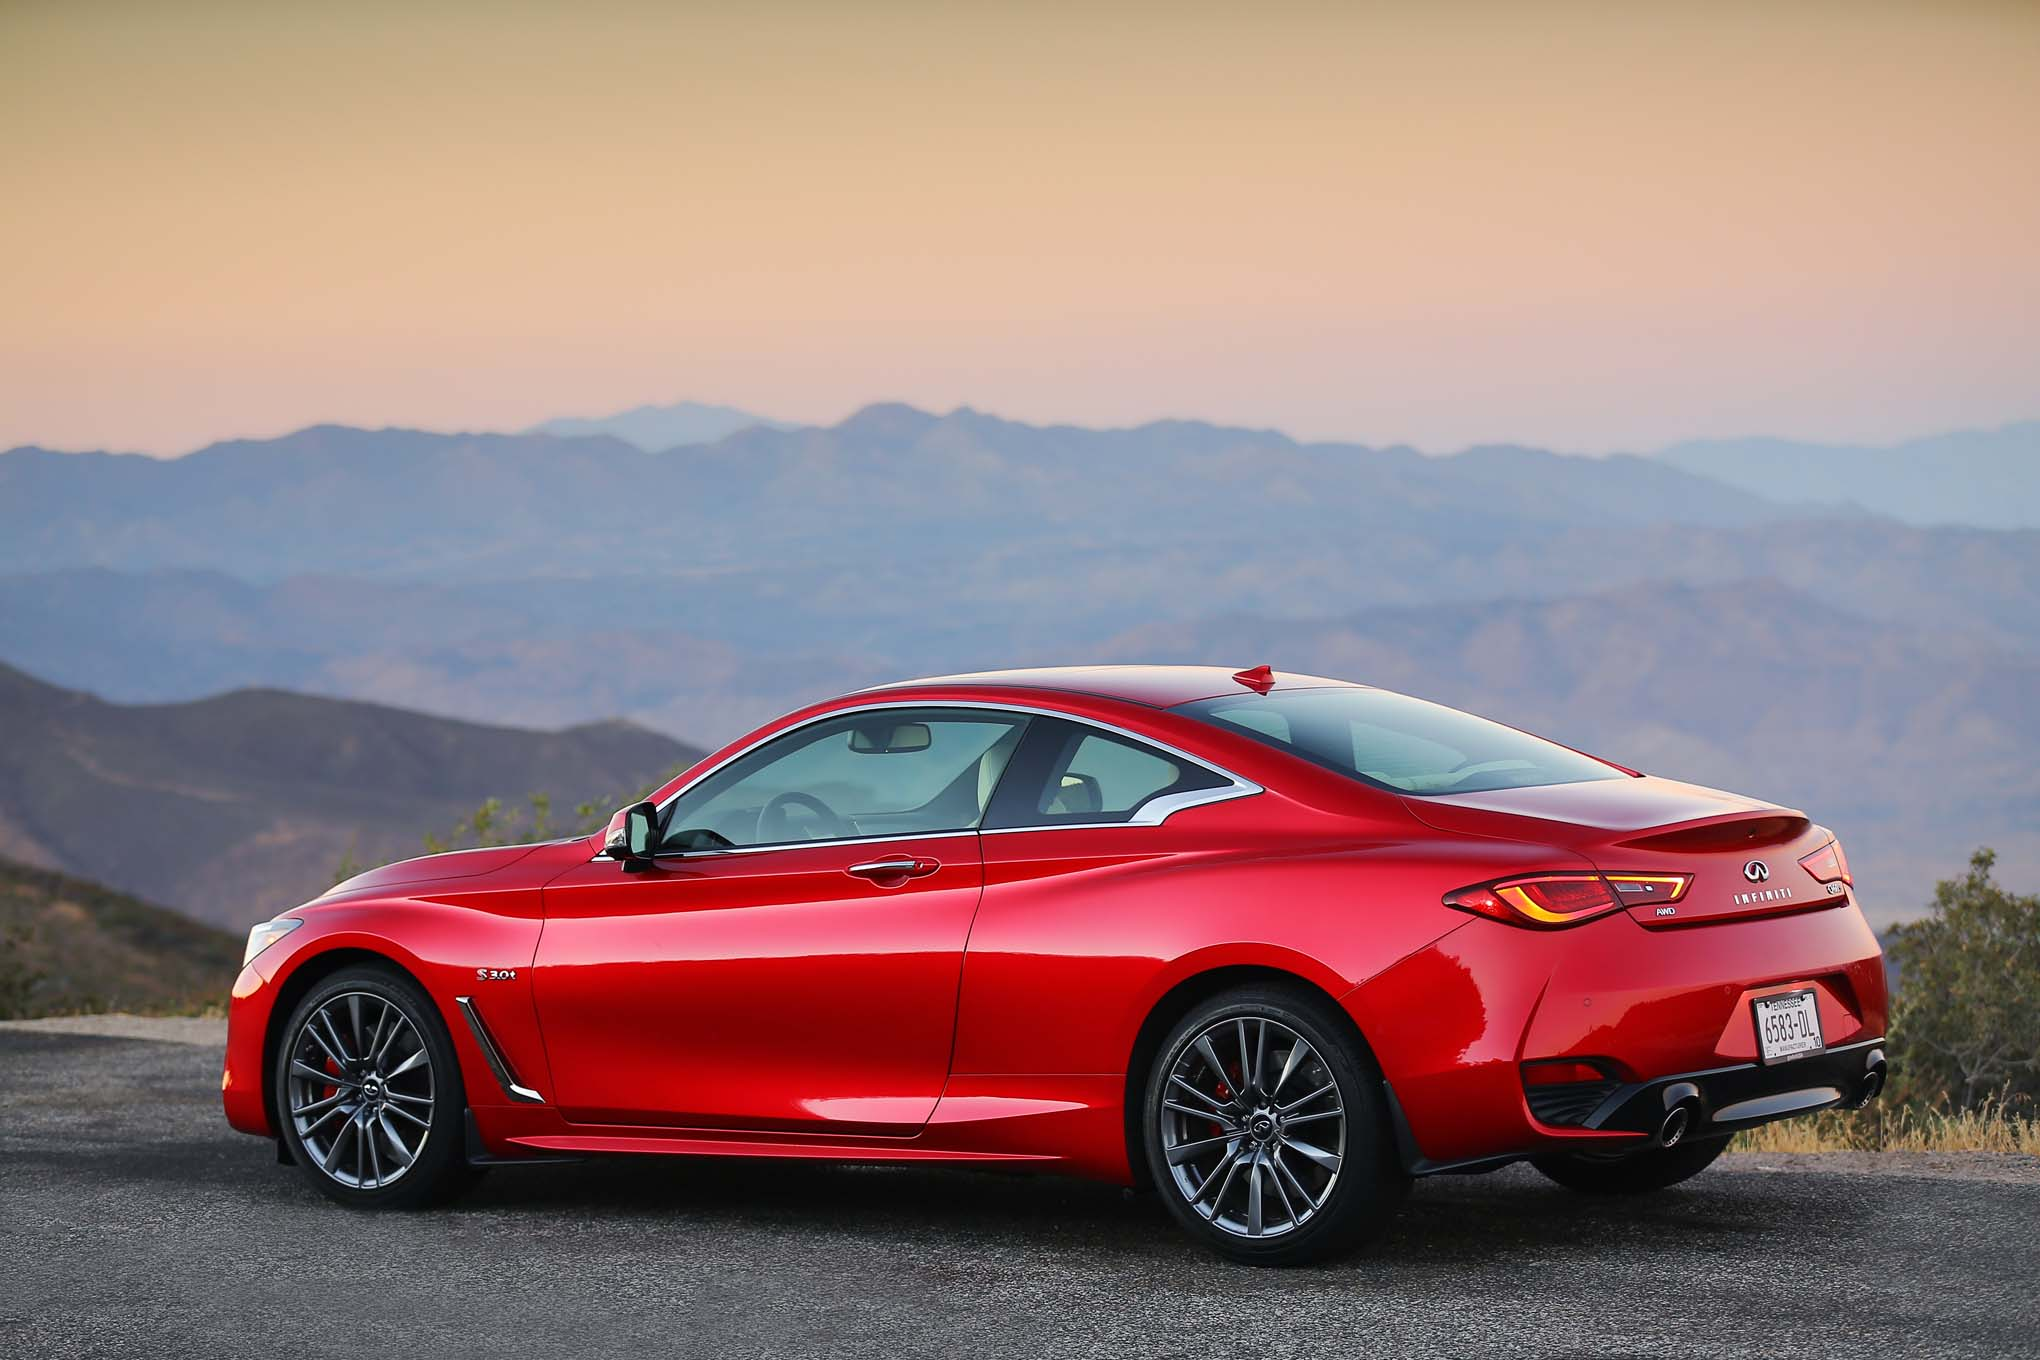 First Drive: 2017 Infiniti Q60 Red Sport 400 | Automobile ...